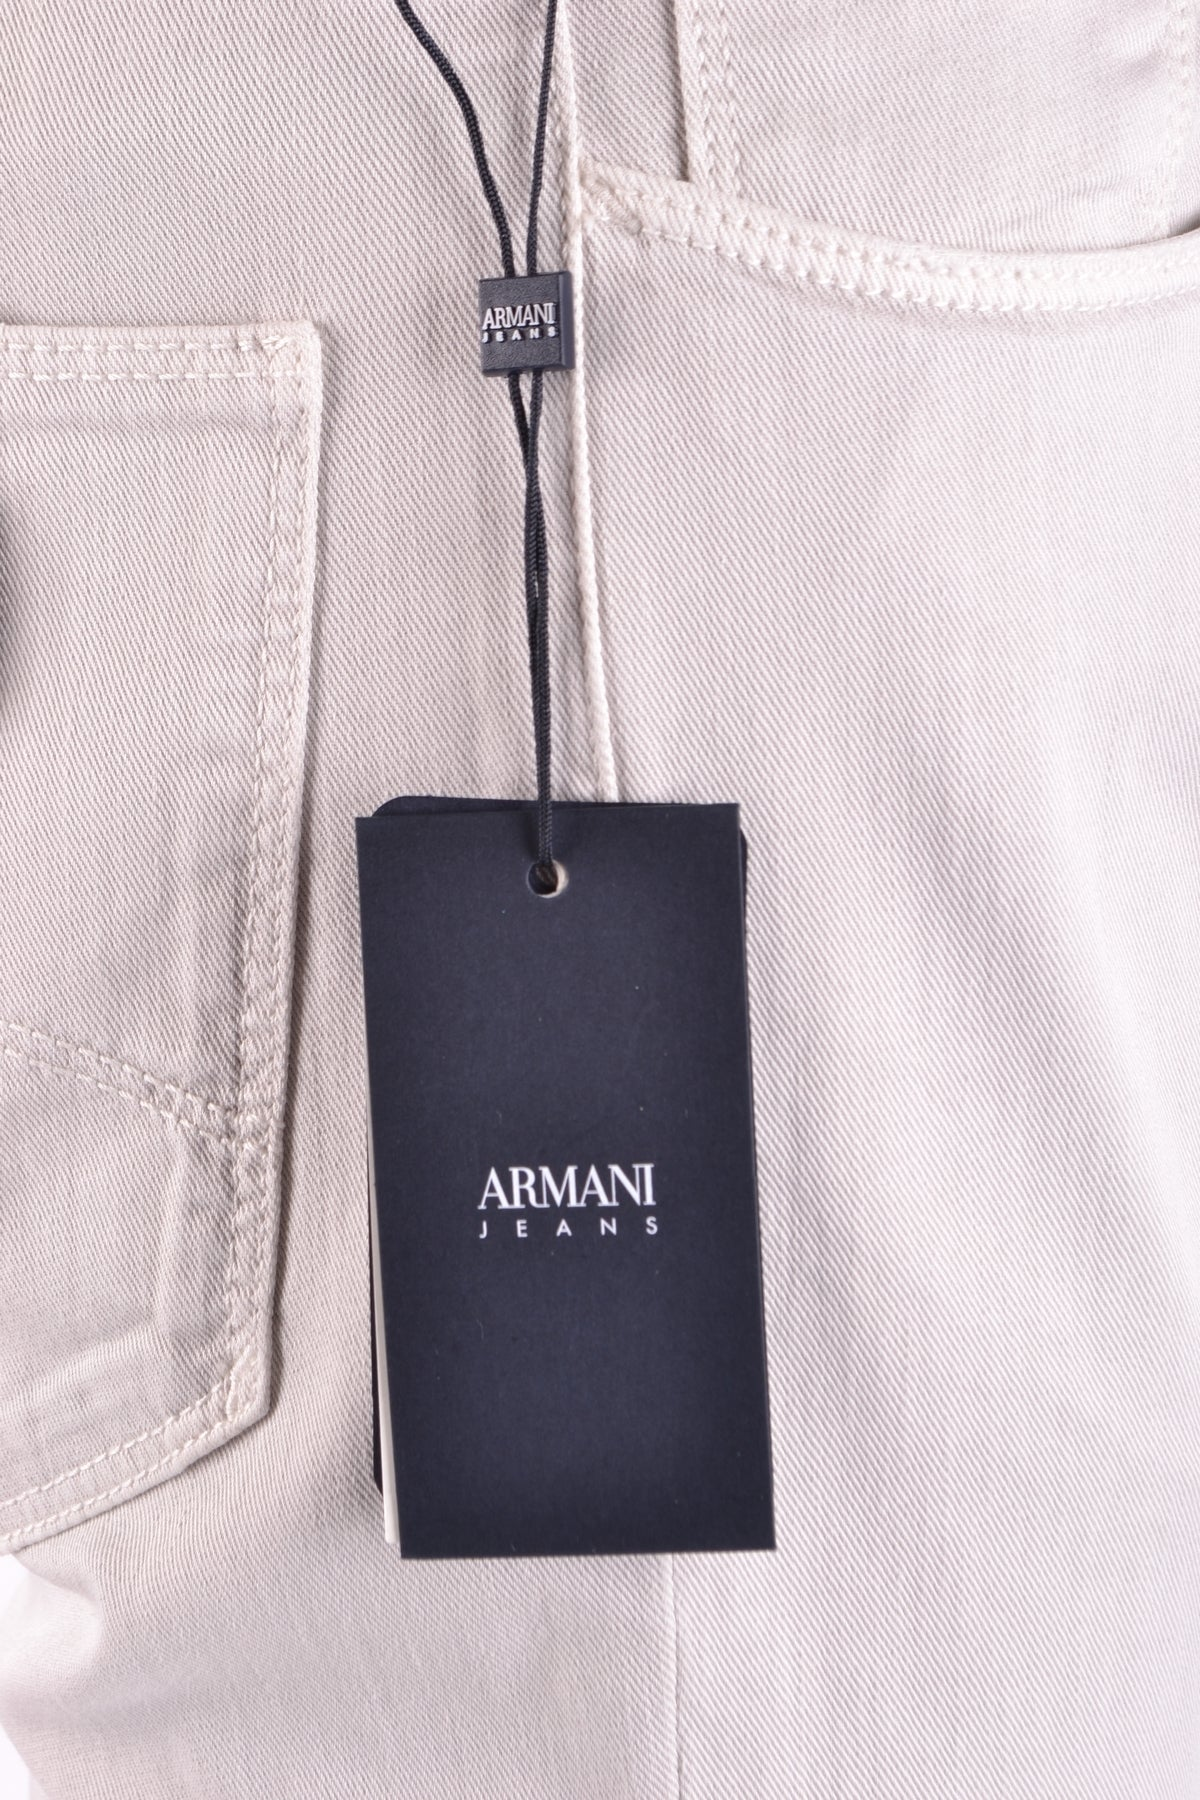 Armani Collezioni Mens Jeans Gray-Jeans - MAN-Product Details Terms: New With LabelYear: 2017Main Color: GraySeason: Spring / SummerMade In: MoroccoSize: UsGender: ManClothing Type: JeansComposition: Cotton 98%, Elastane 2%-Keyomi-Sook